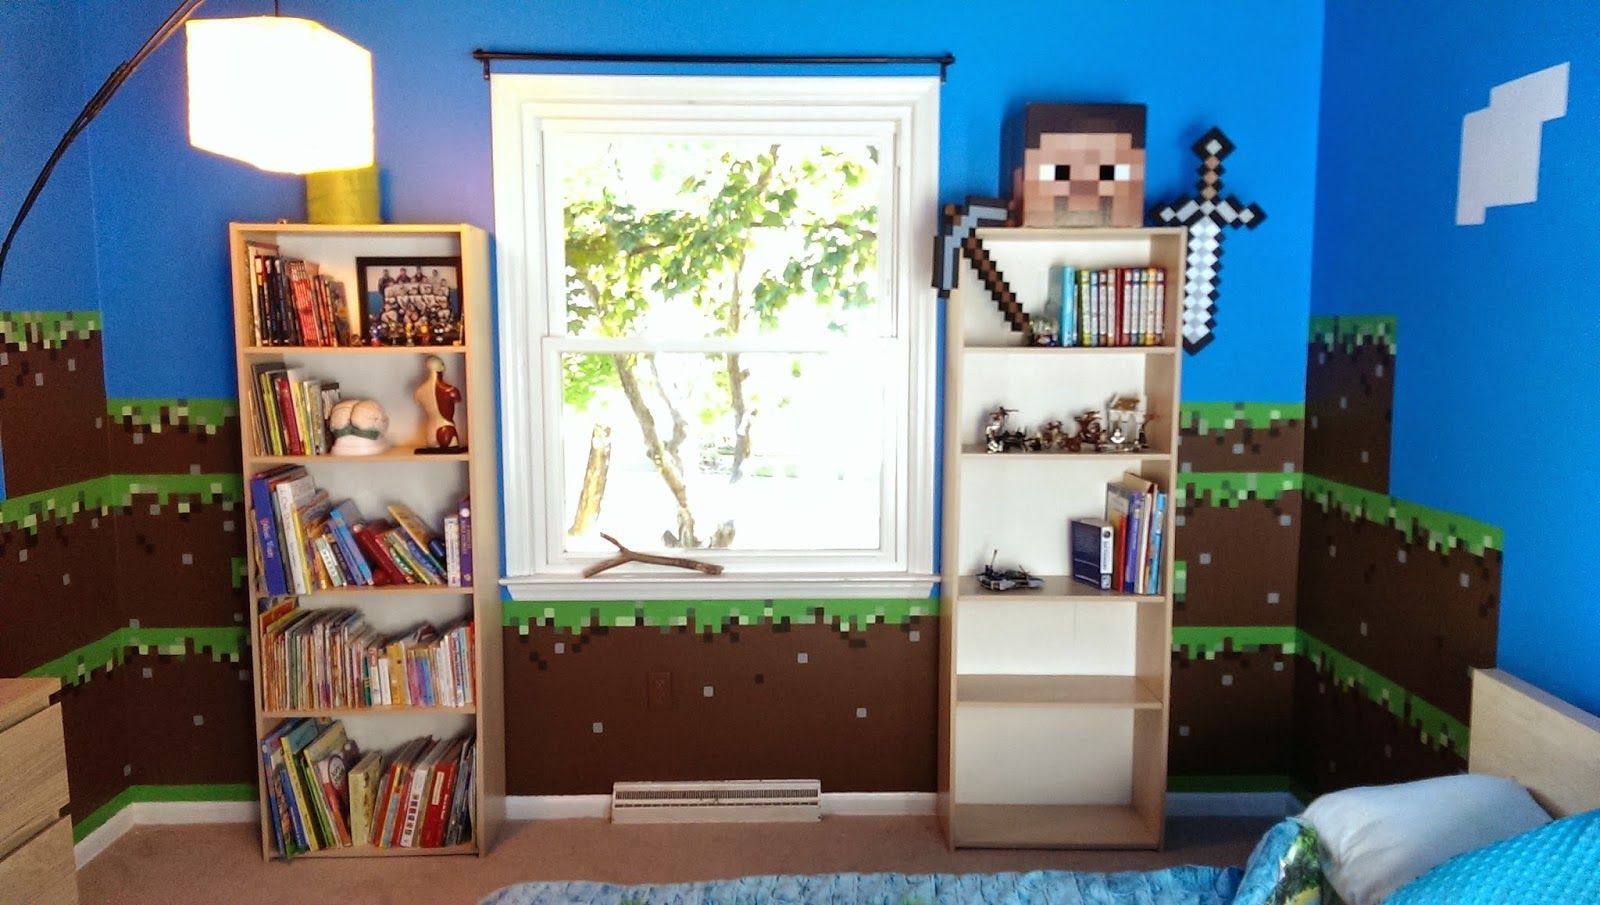 Minecraft wall mural so neat kid cool bedroom ideas for Nice bedroom designs minecraft